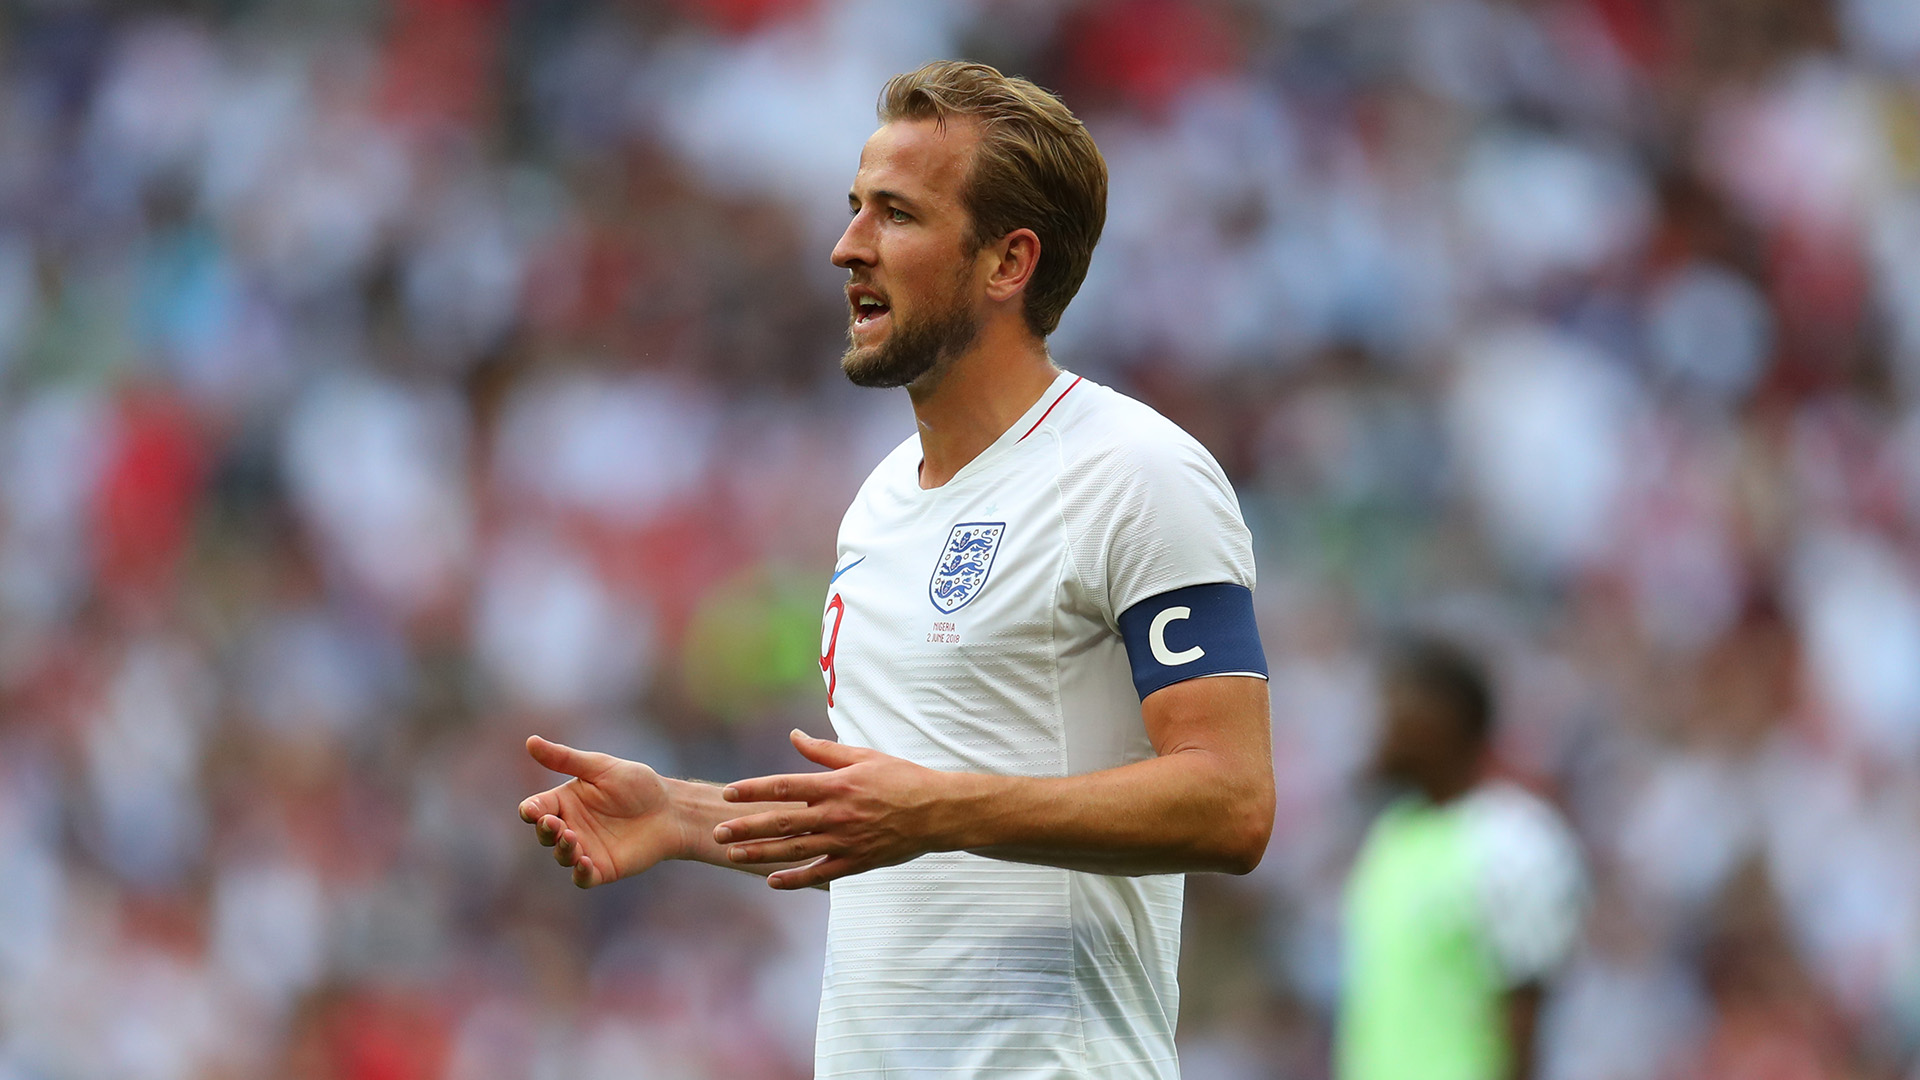 Twitterati hails Harry Kane for giving England win in opener against Tunisia